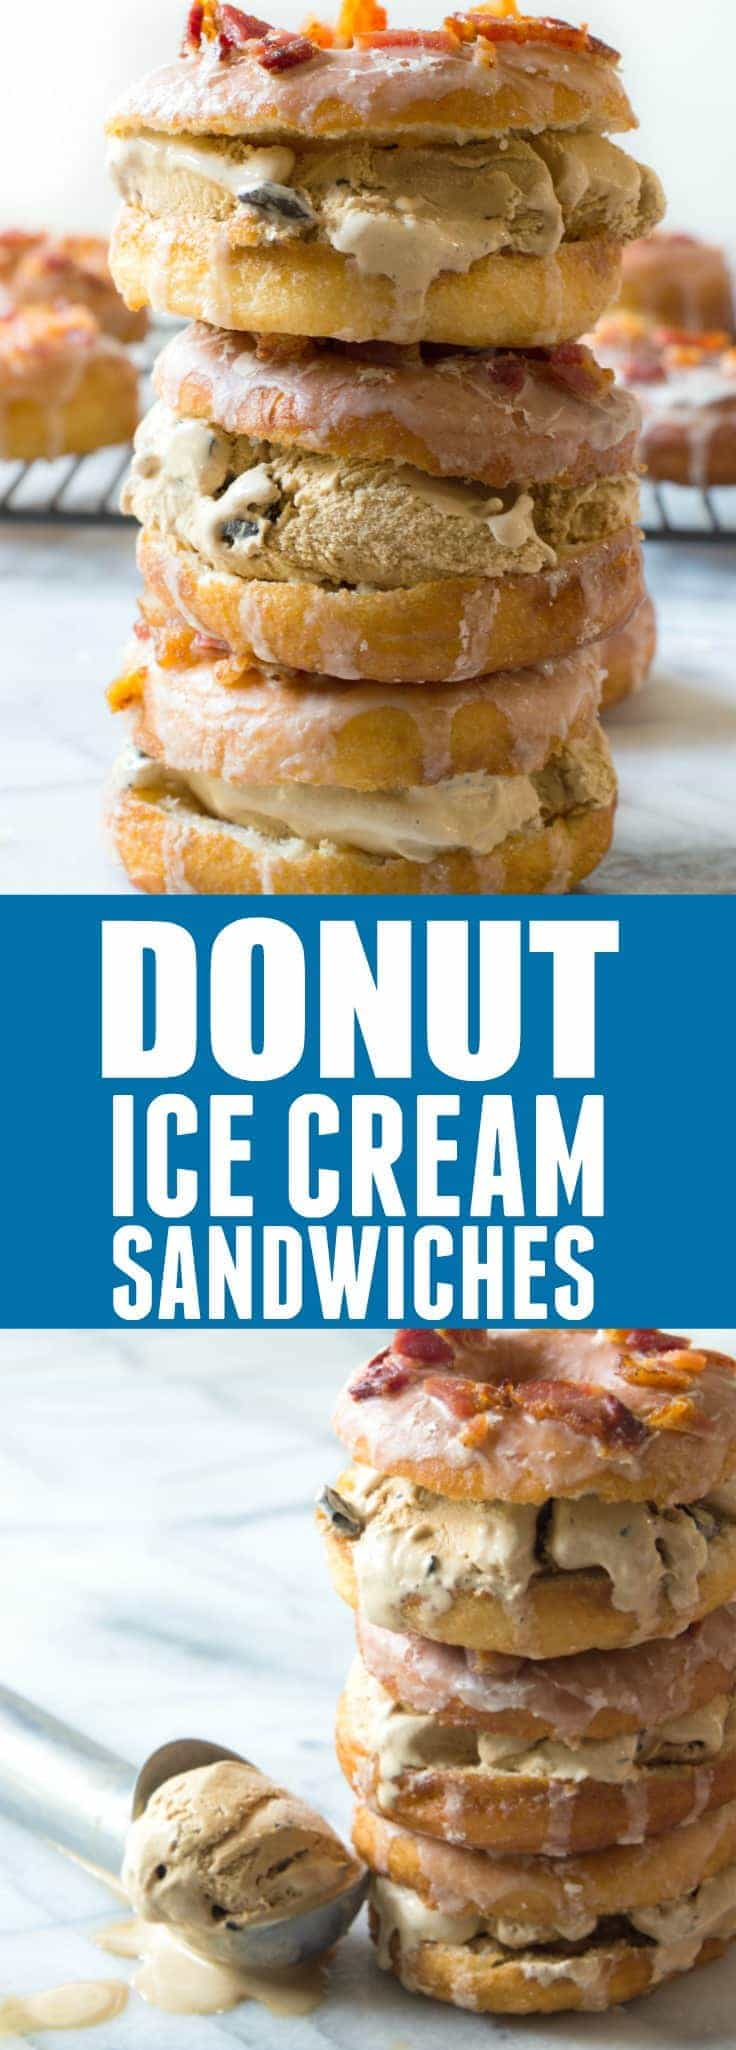 Donut ice cream sandwiches house of yumm find me on pinterest for more great recipes ccuart Gallery